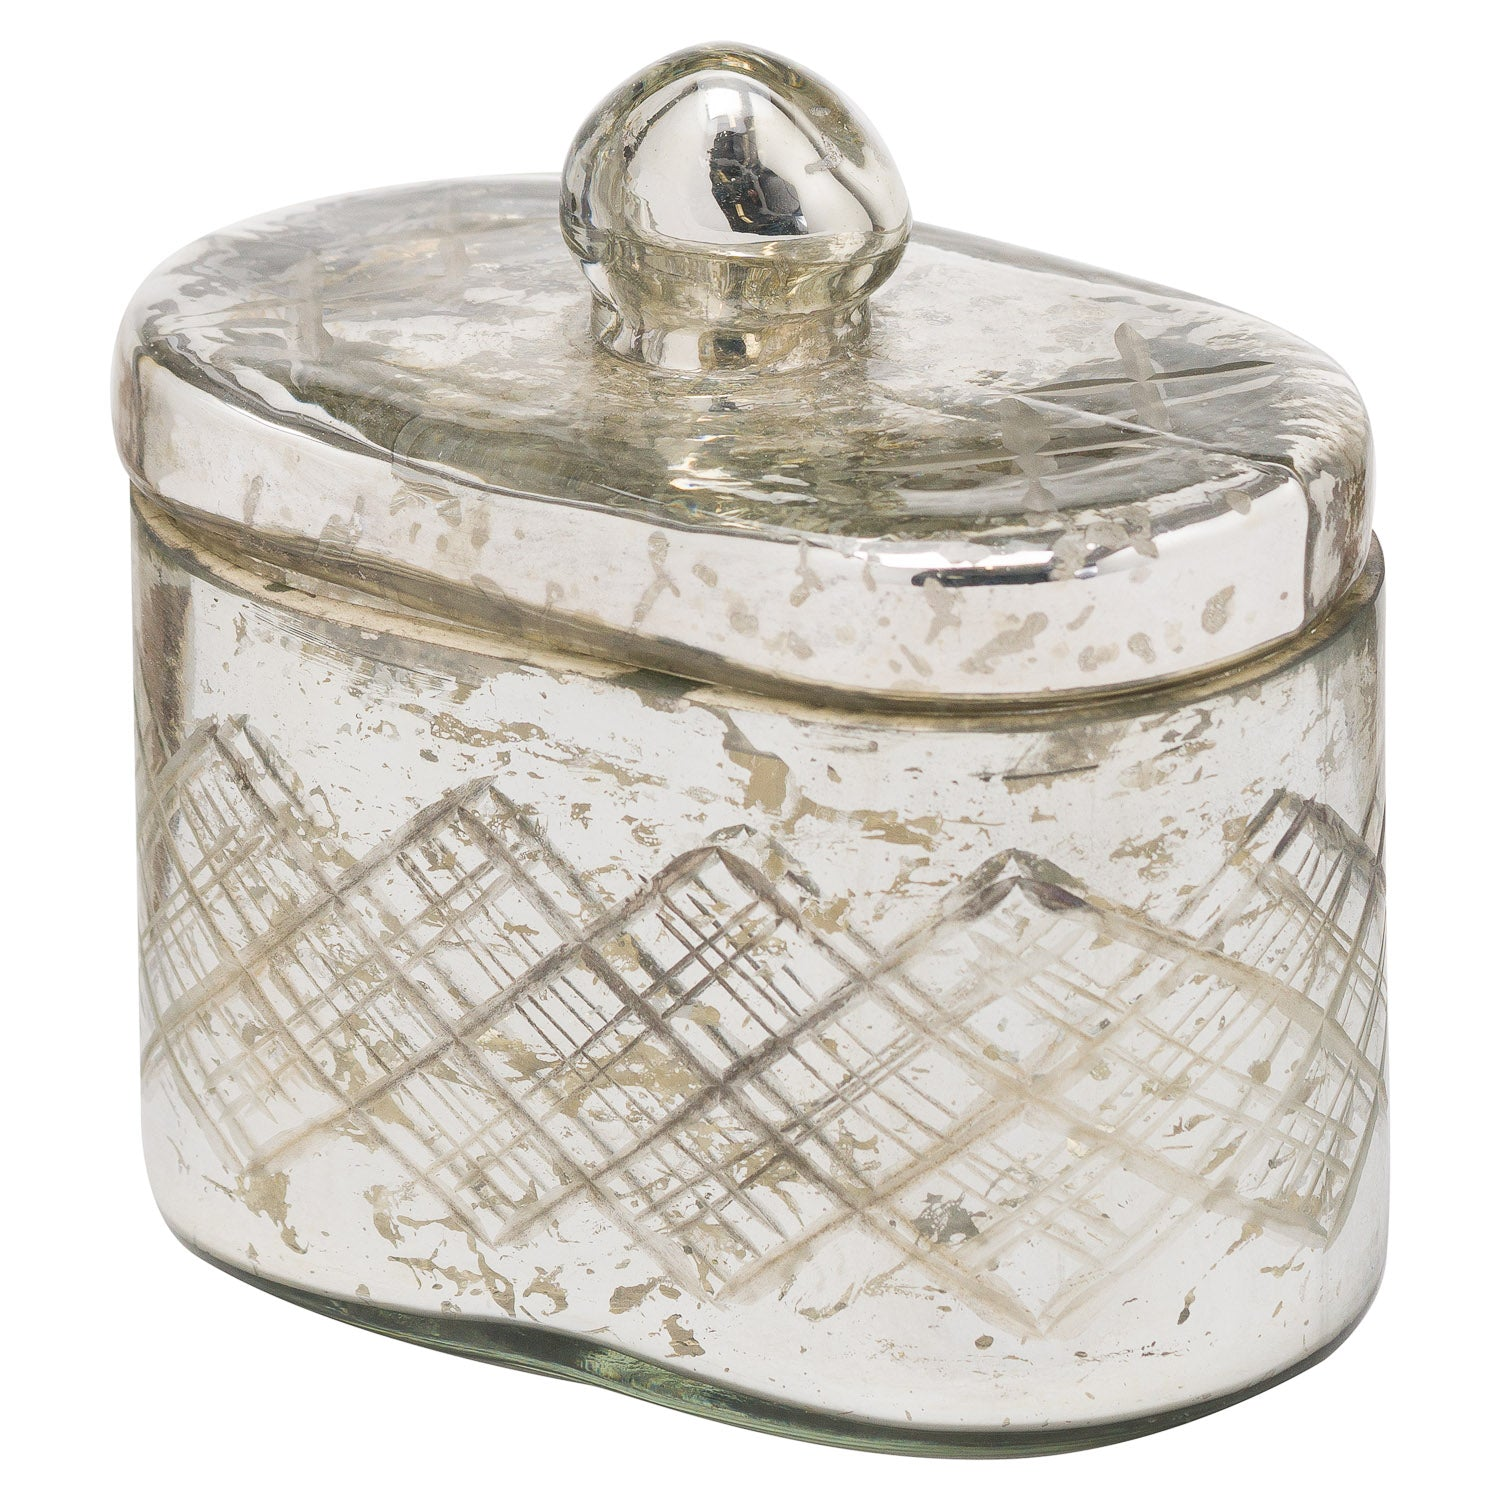 The Noel Collection Mercury Trinket Jar